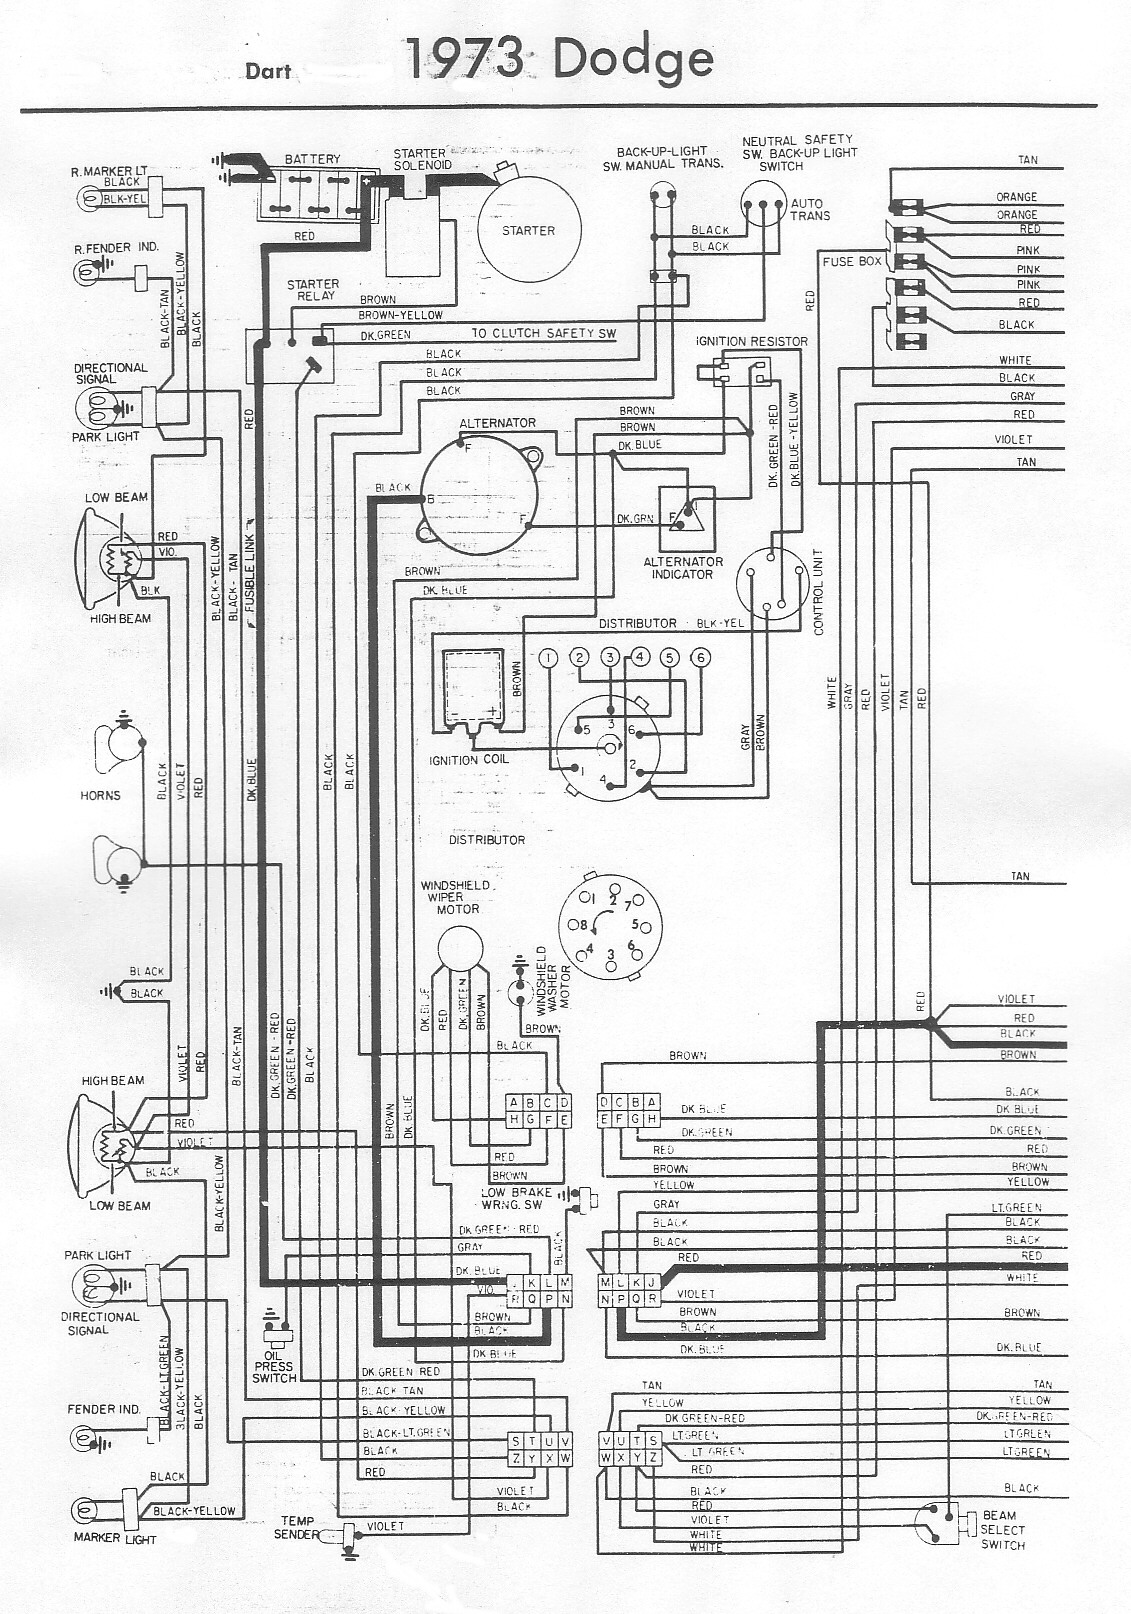 hight resolution of 73 dodge dart wiring diagrams wiring diagrams schema rh 53 verena hoegerl de 2014 dodge dart ac wiring diagram 2013 dodge dart wiring diagram wipers